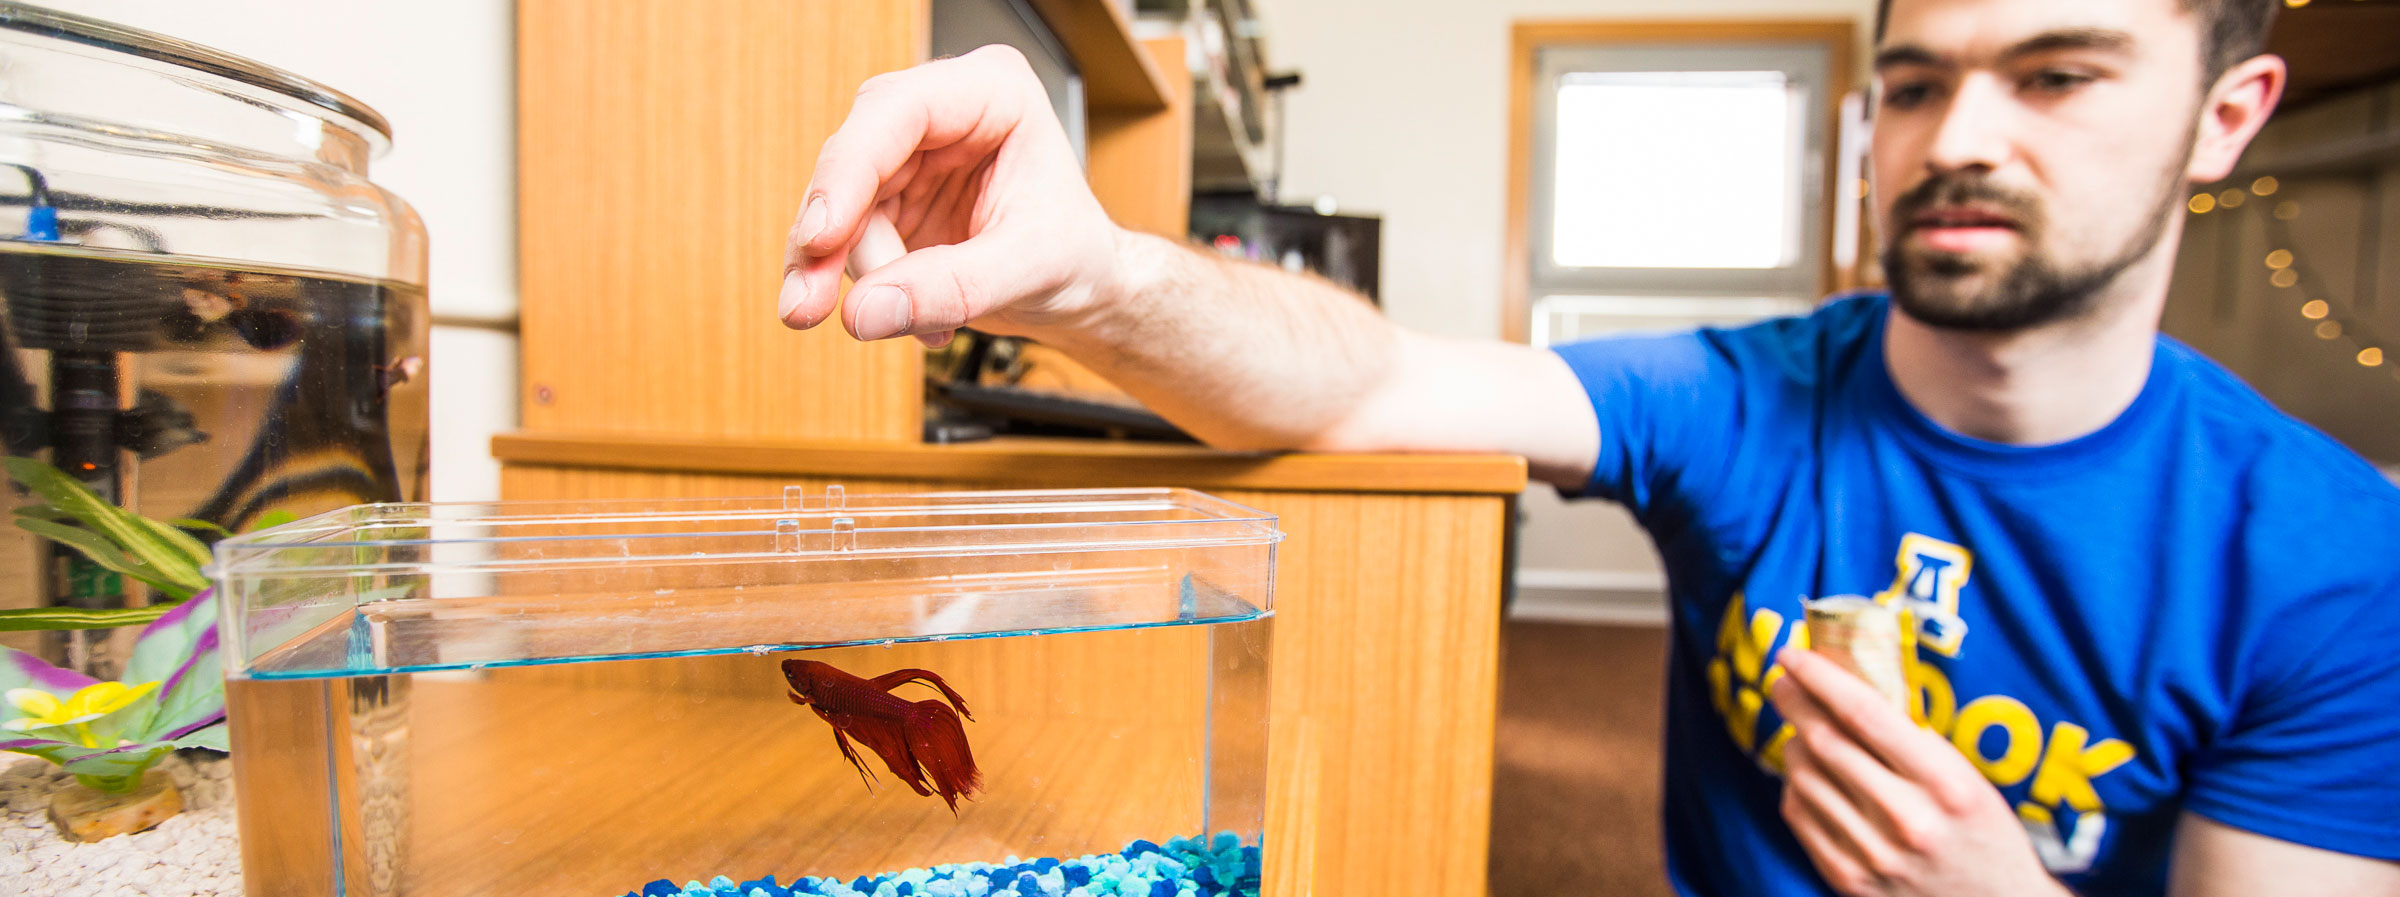 Student feeding fish in his room.